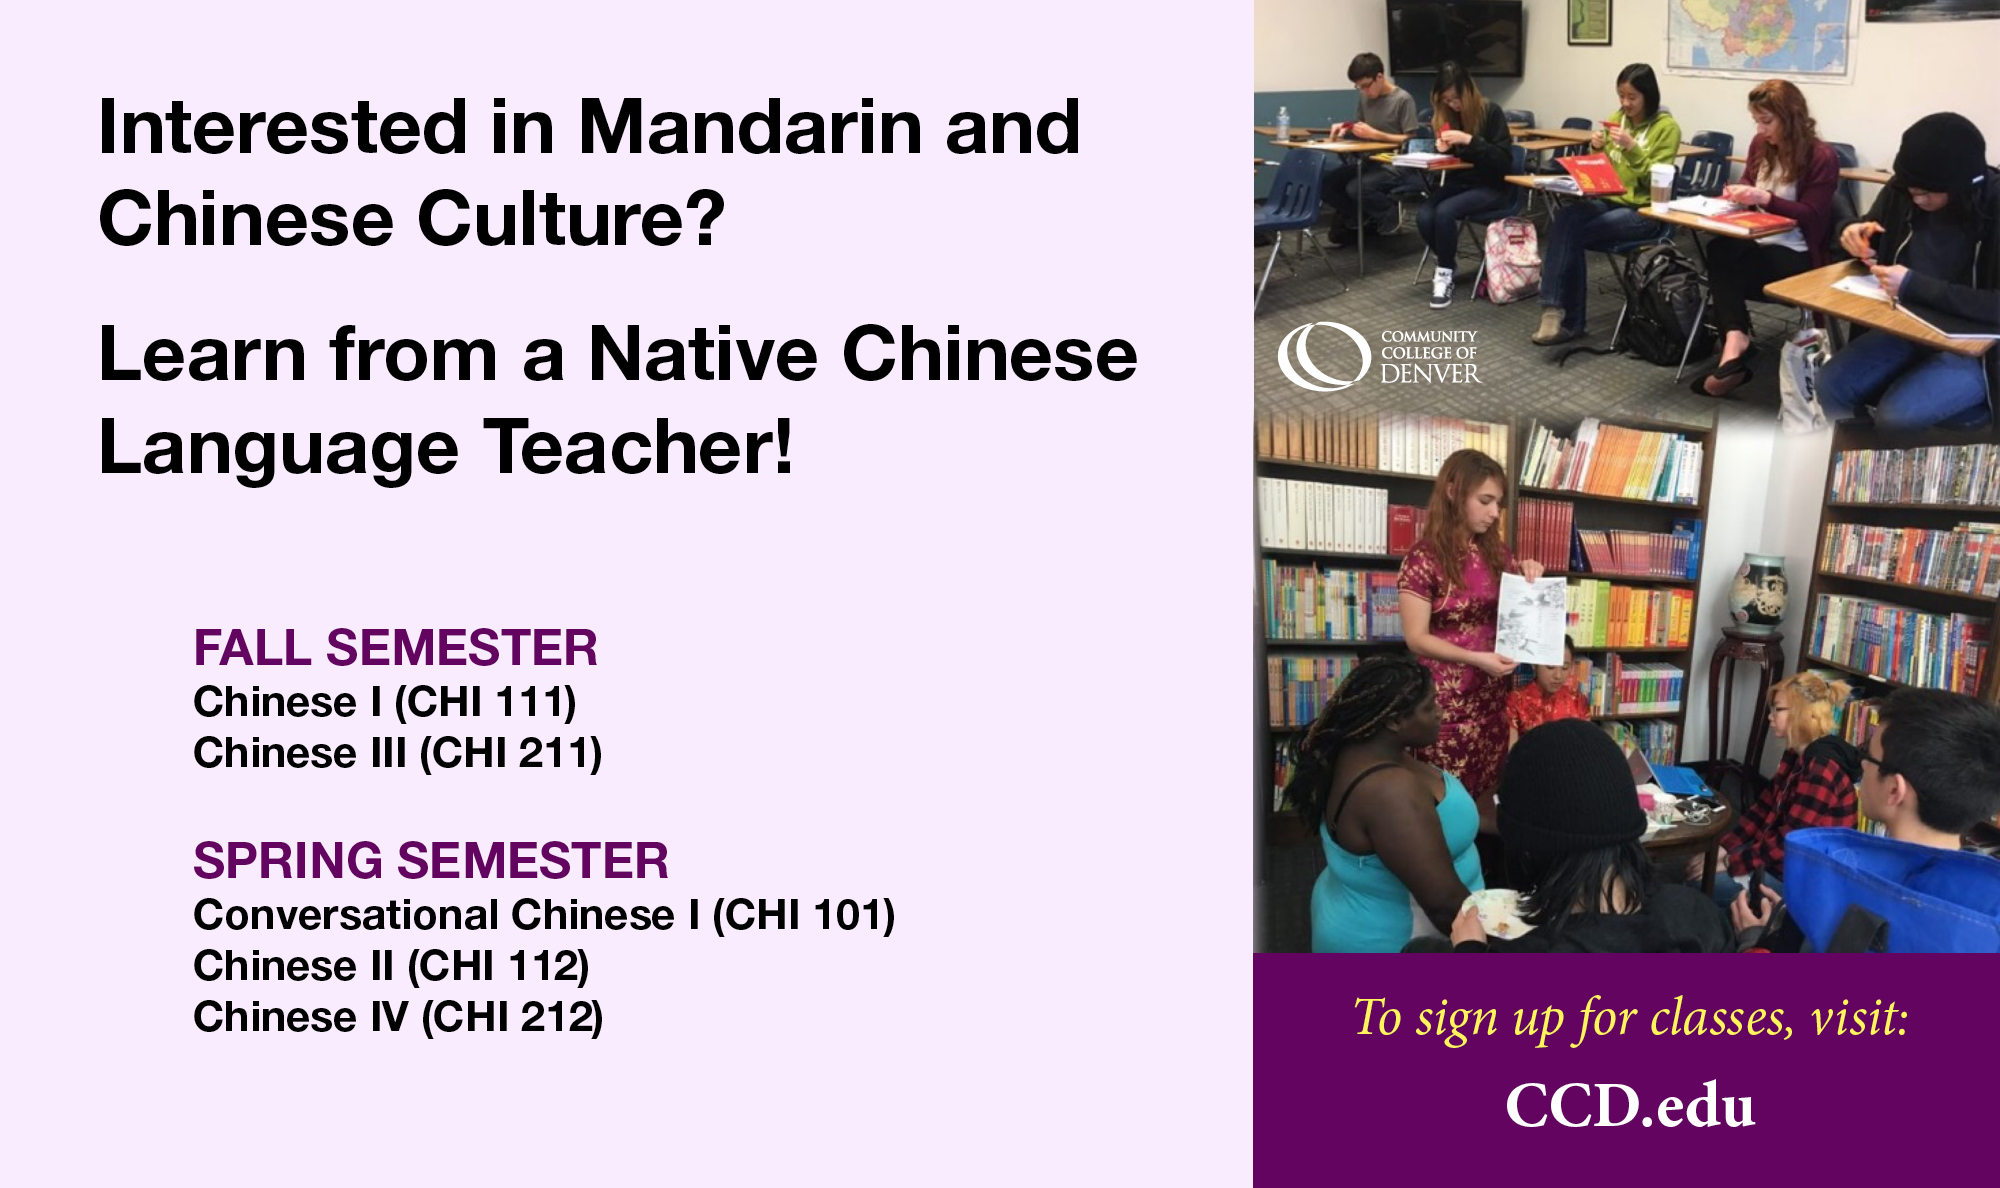 Interested in Mandarin and Chinese Culture? Sign up for Classes at ccd.edu!